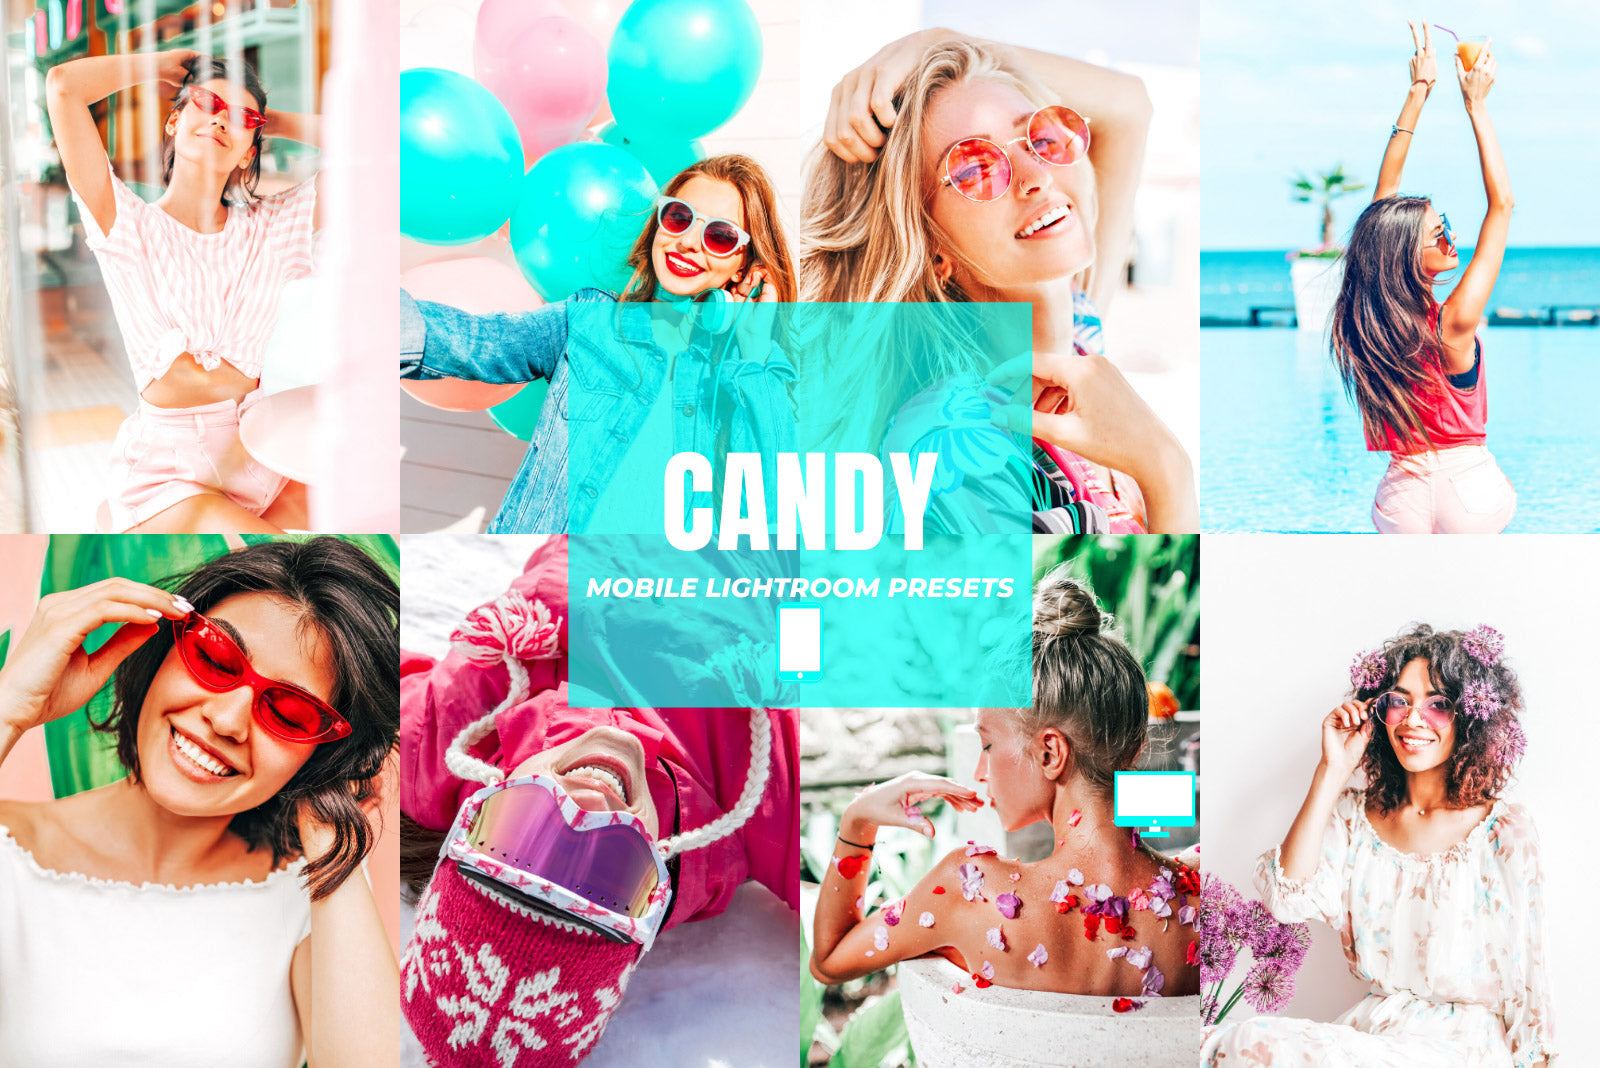 CANDY DESKTOP LIGHTROOM PRESETS by The Viral Presets